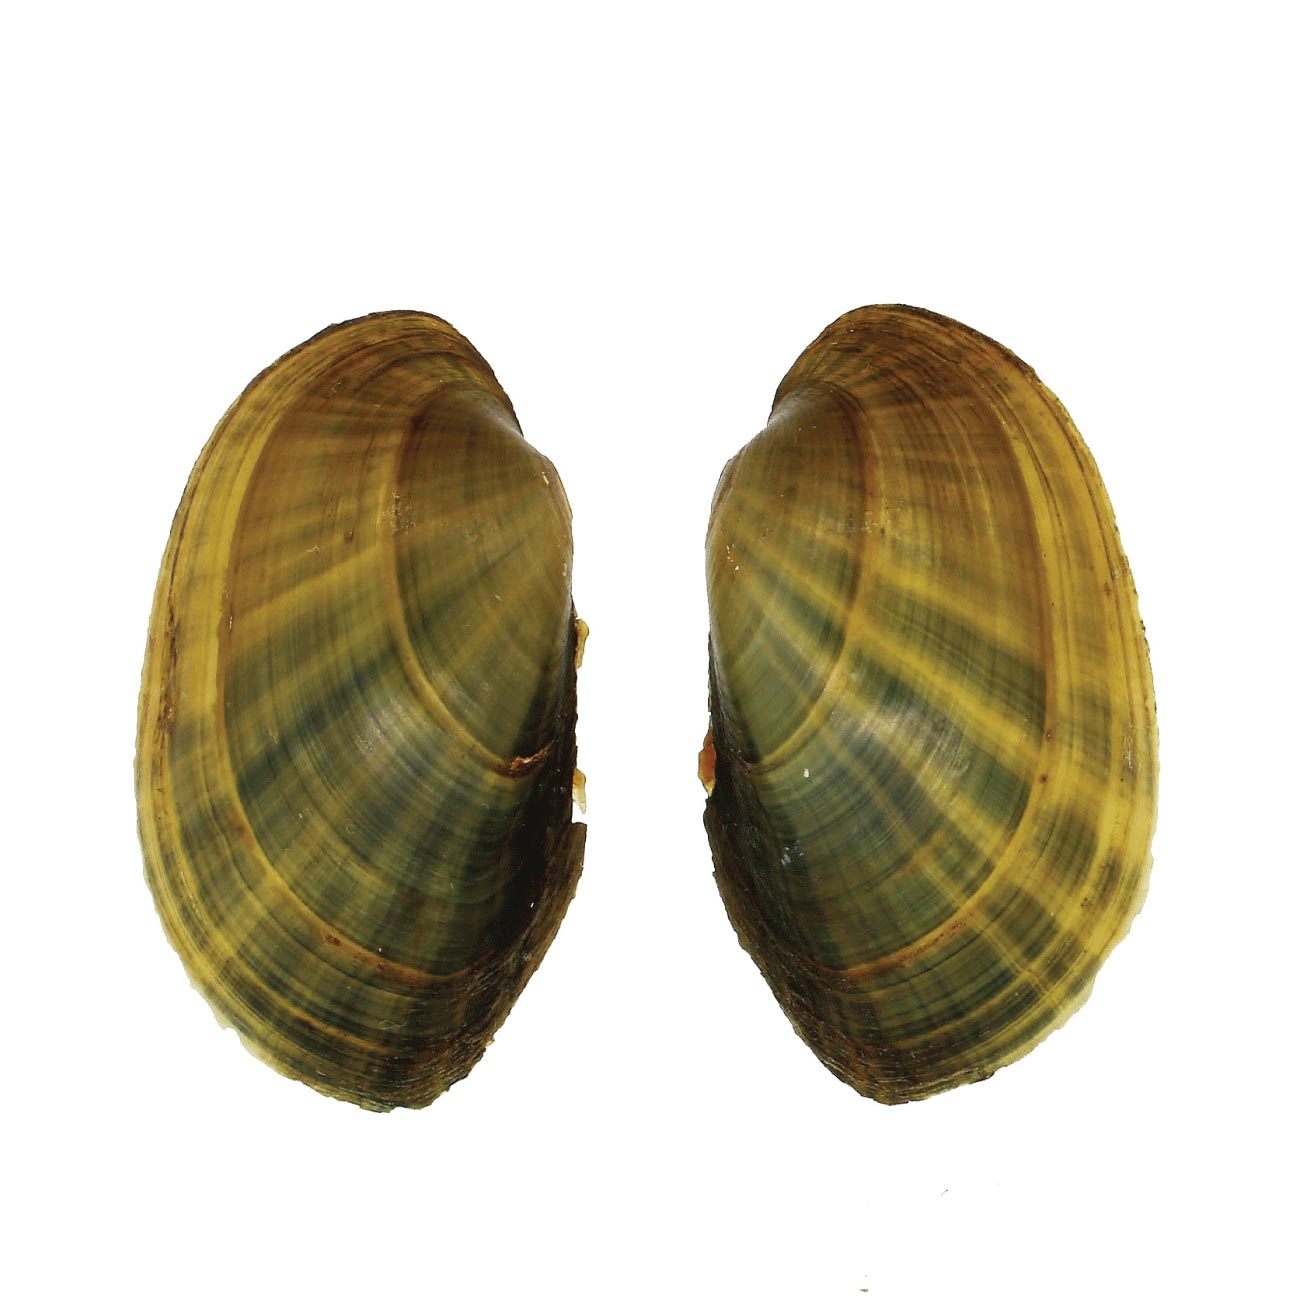 Small mussel specimen from Lake Pepin